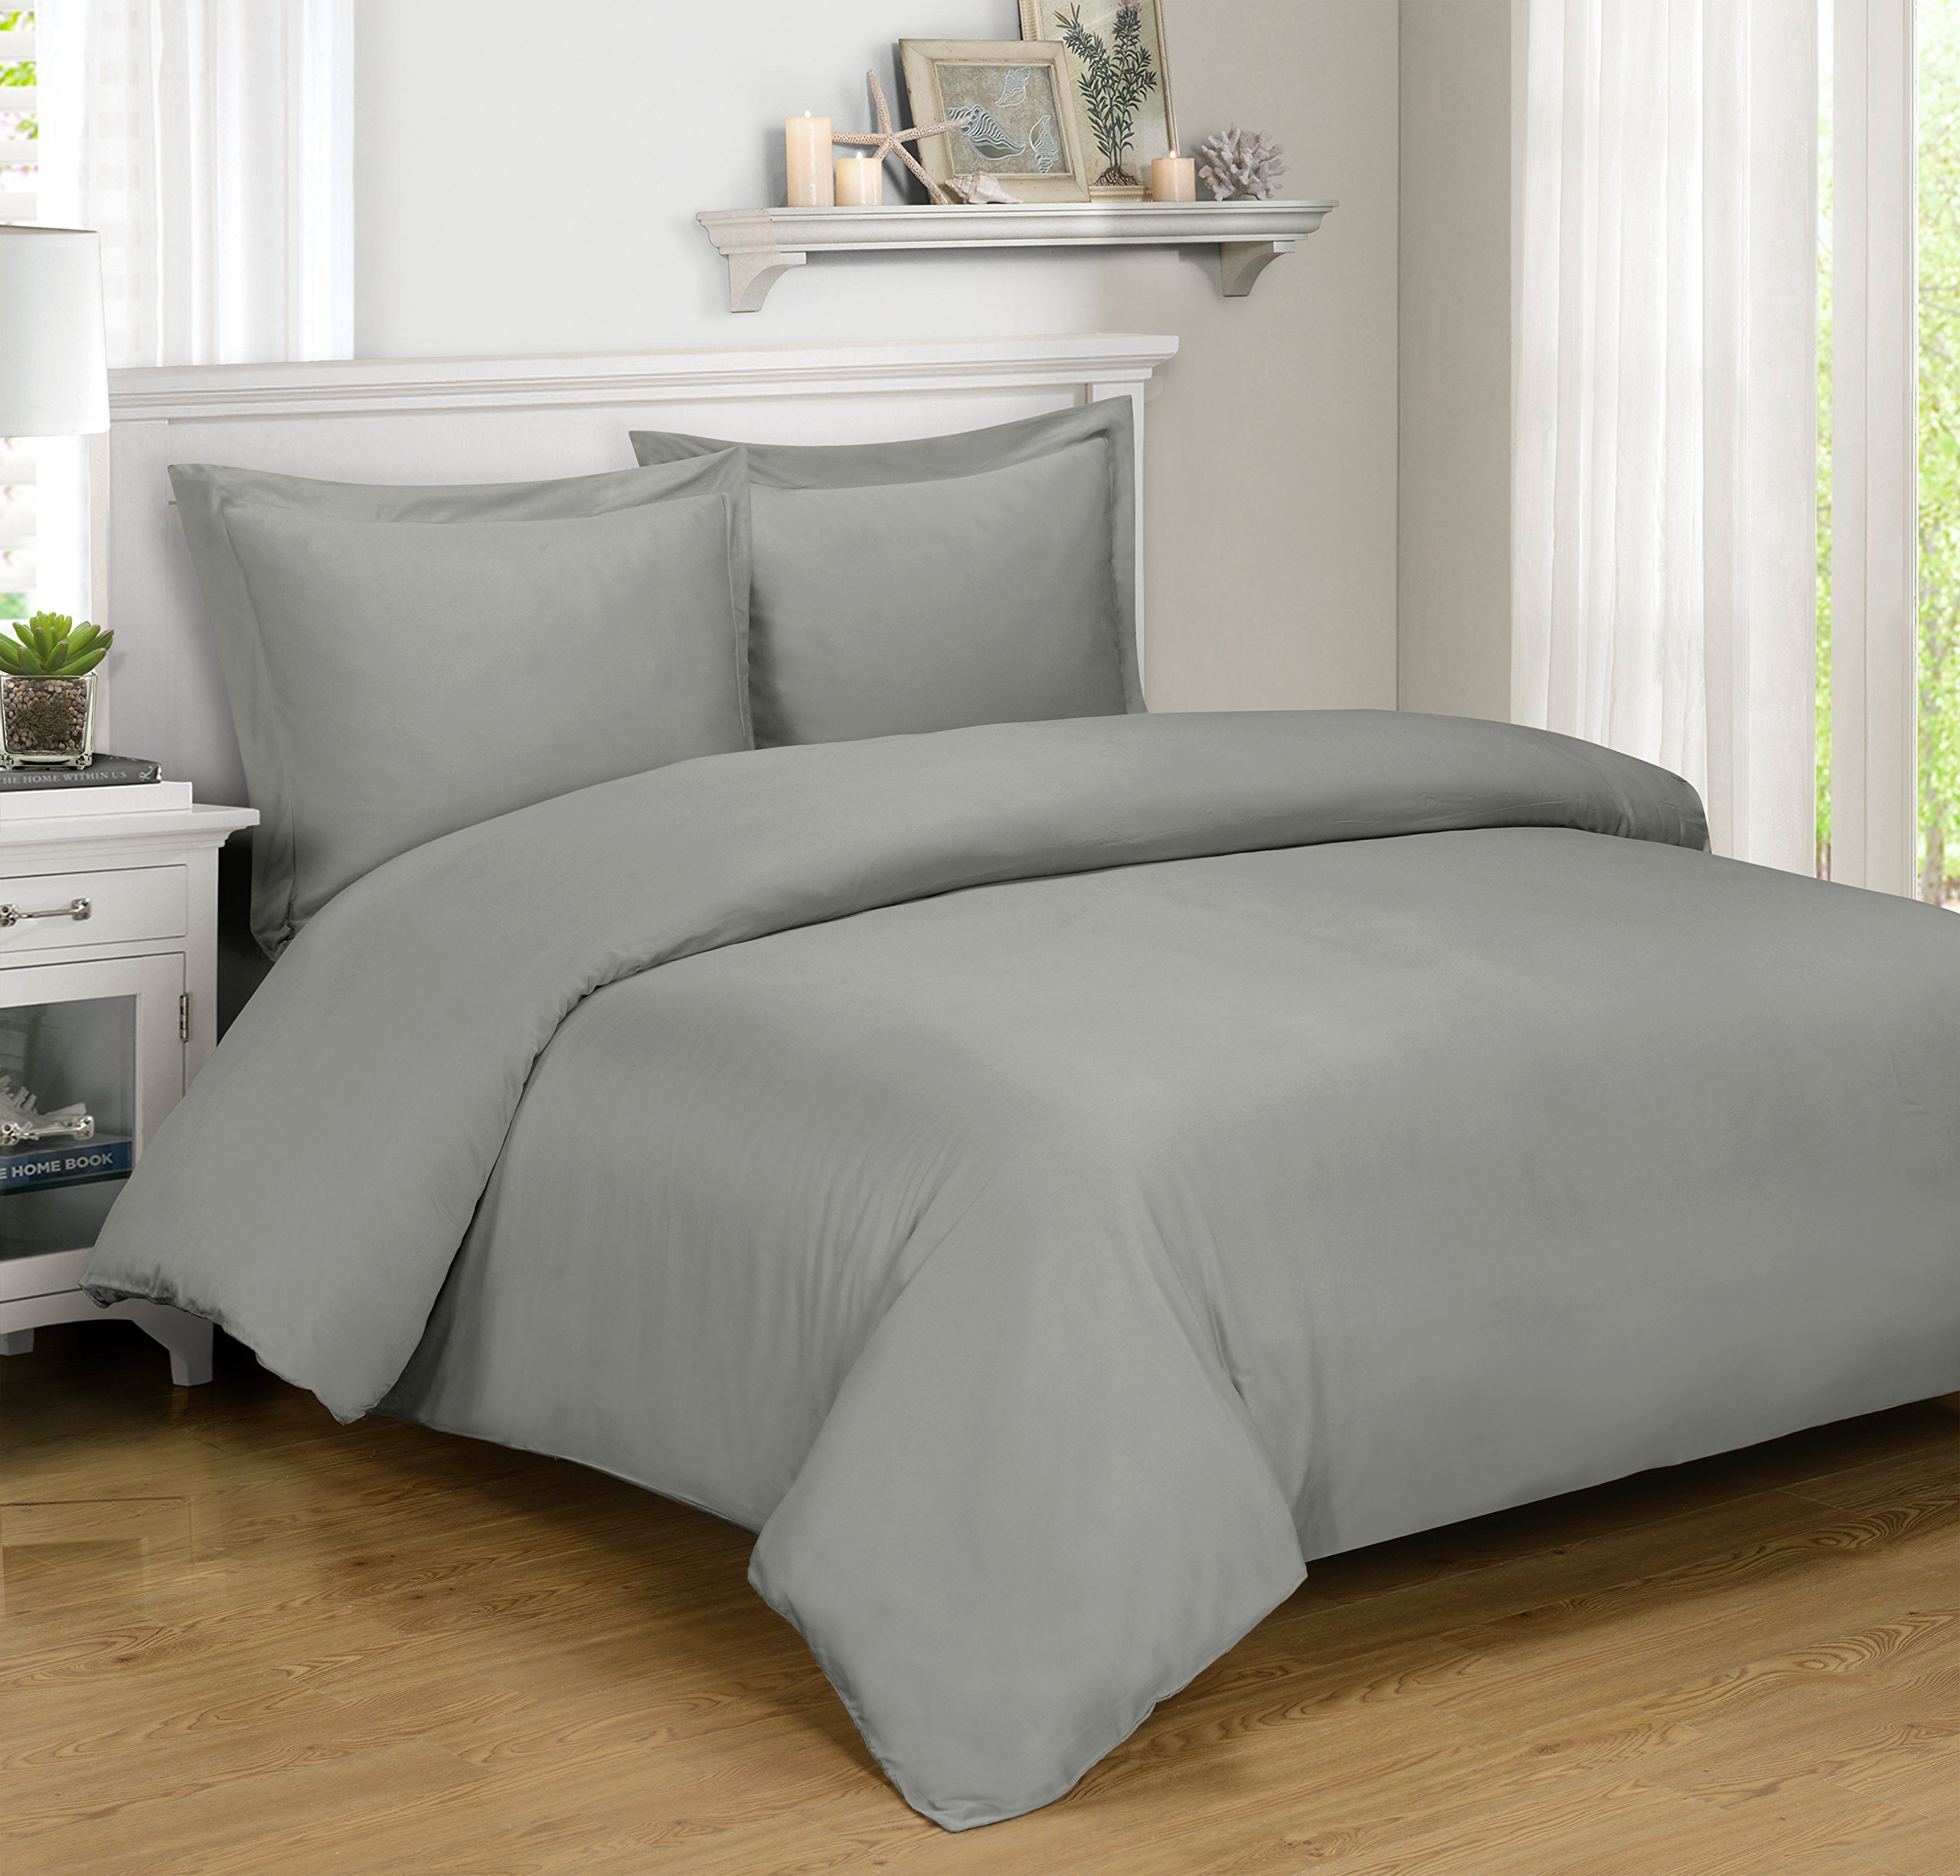 Royal Hotel BAMBOO Duvet Cover 100% BAMBOO Viscose Comforter Cover - Duvet Cover Set with Corner Ties and Button Closer, Full/Queen size Gray